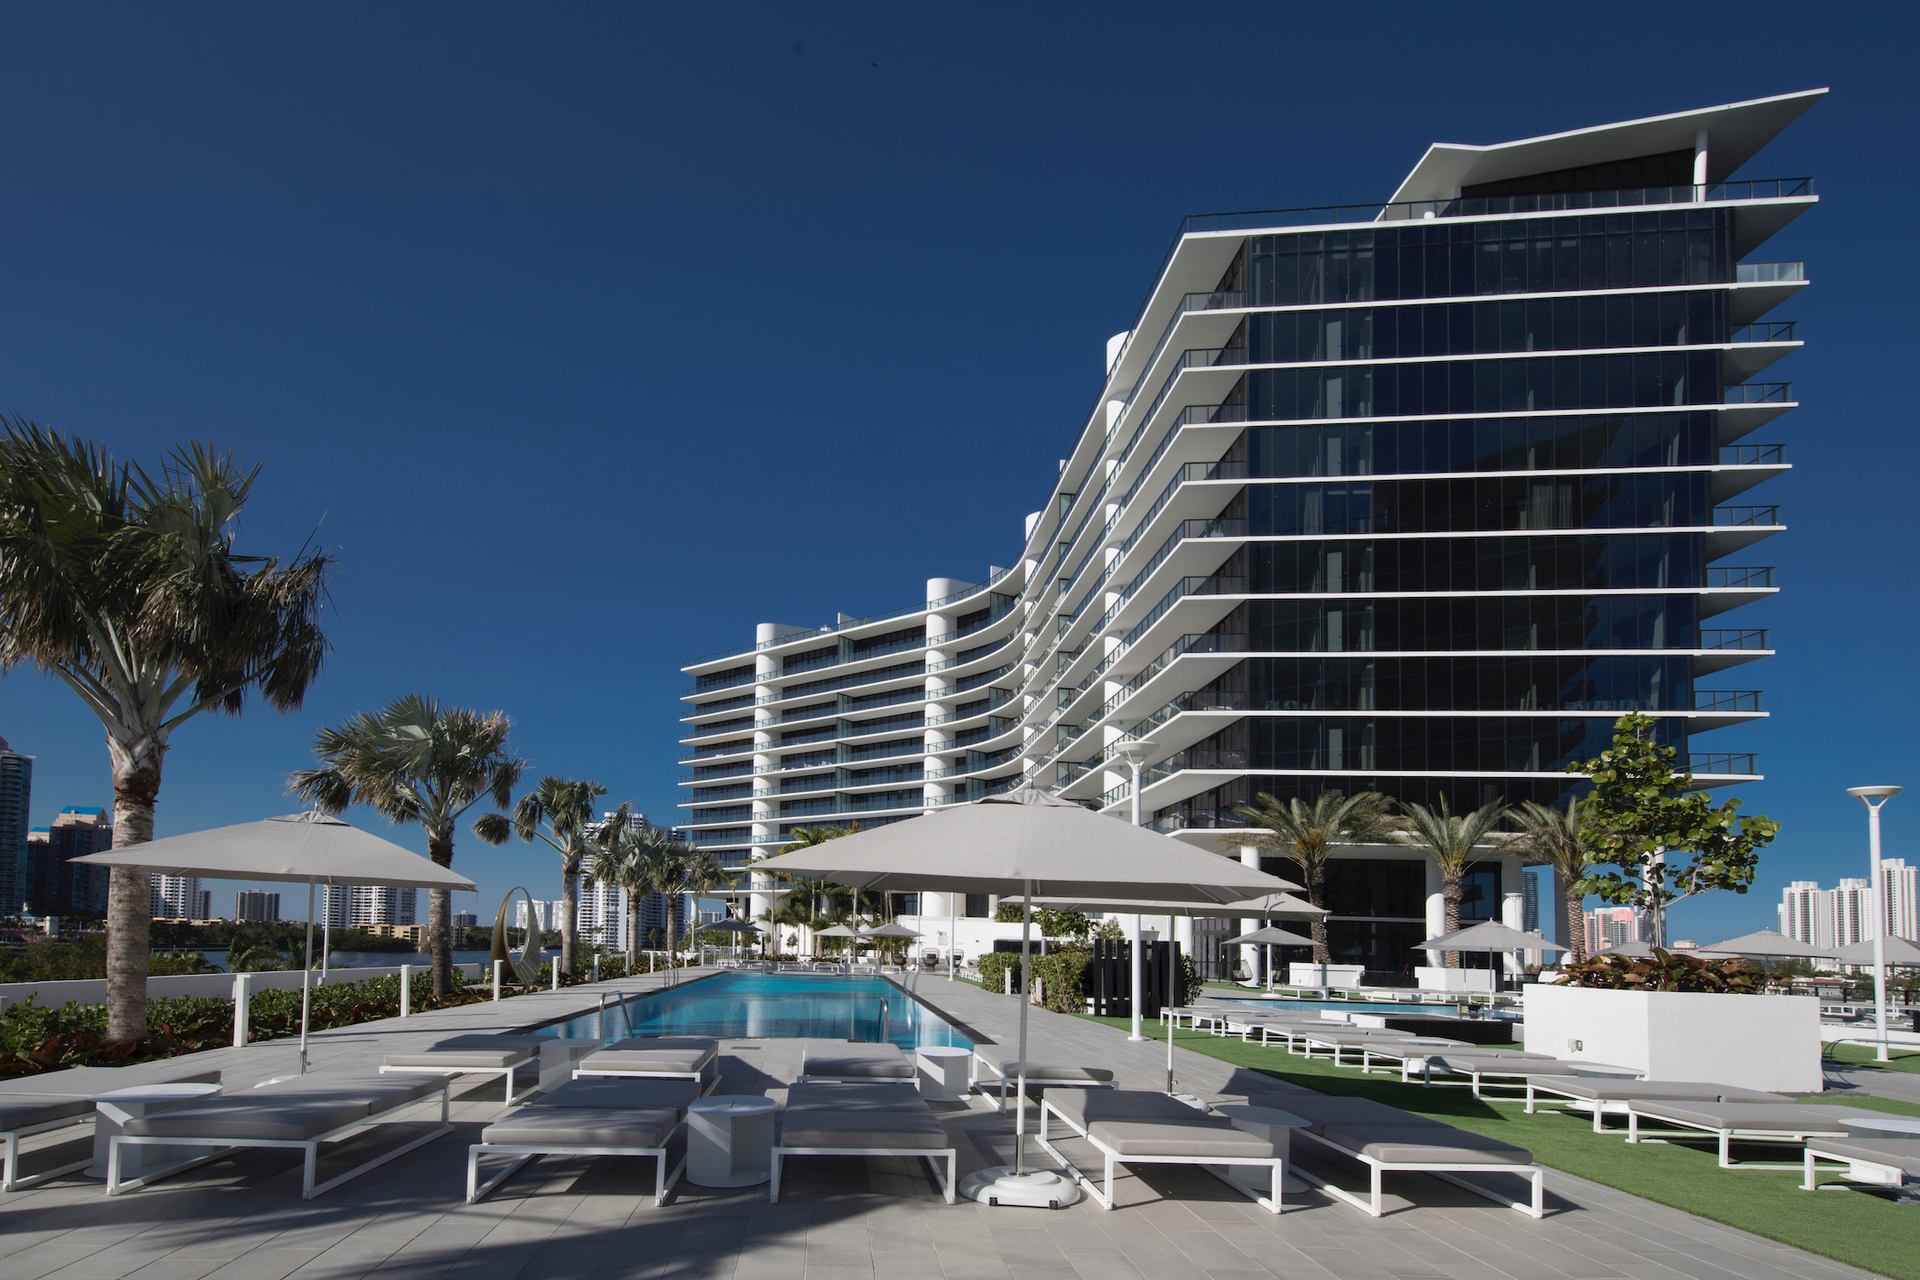 Privé at Island Estates' exterior incorporates a clean design with bold lines and glass walls for guests and tenants to enjoy.